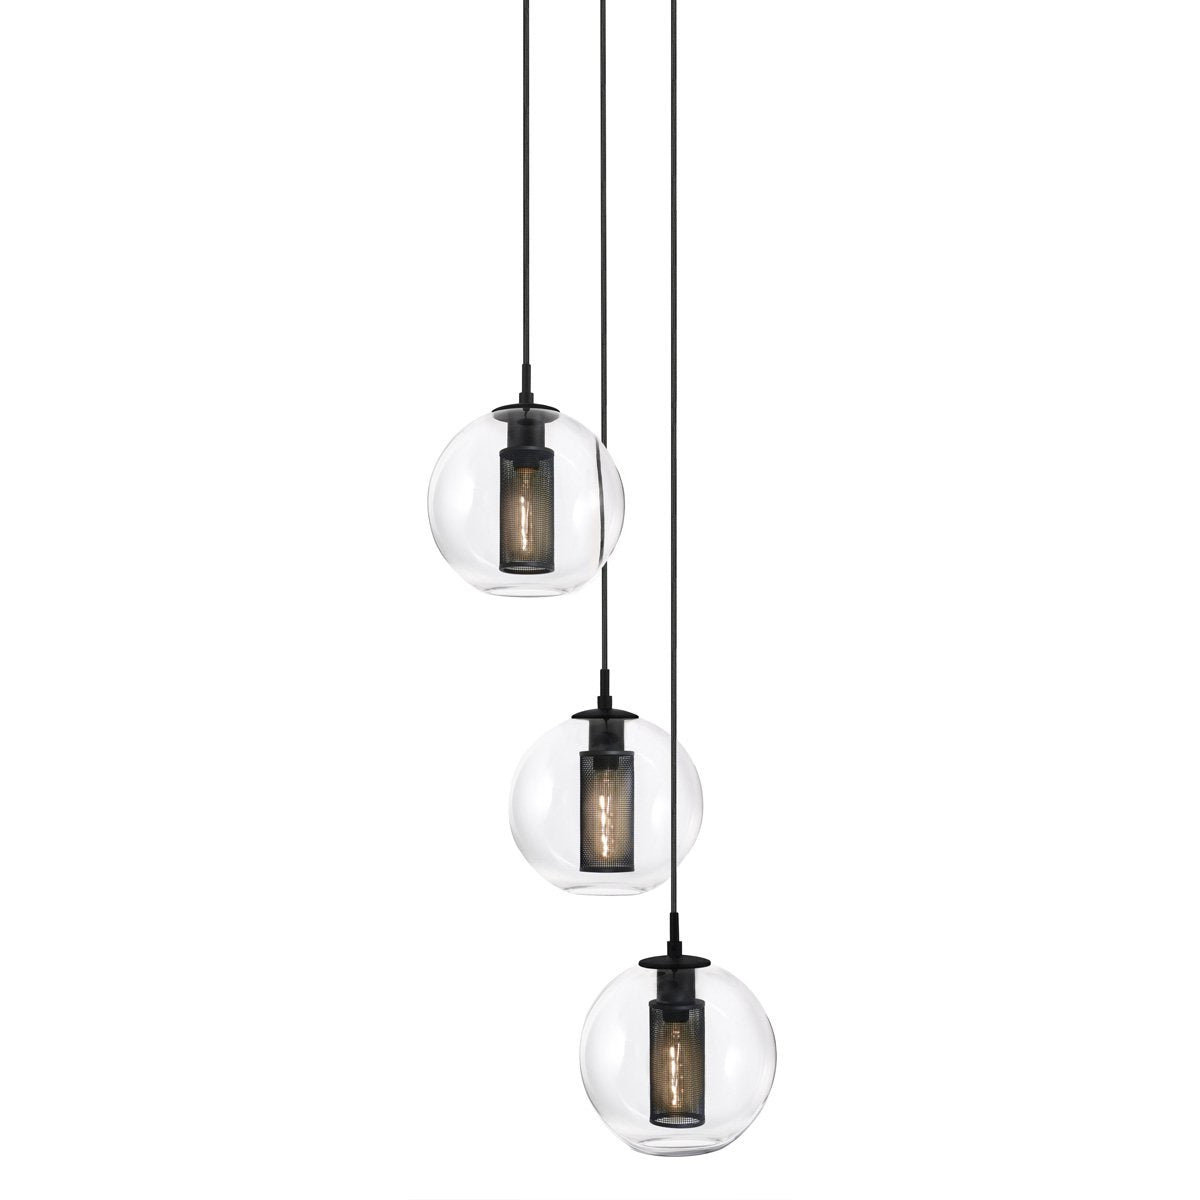 Sonneman - A Way of Light - 4934.97 - Three Light Pendant - Tribeca - Textured Black